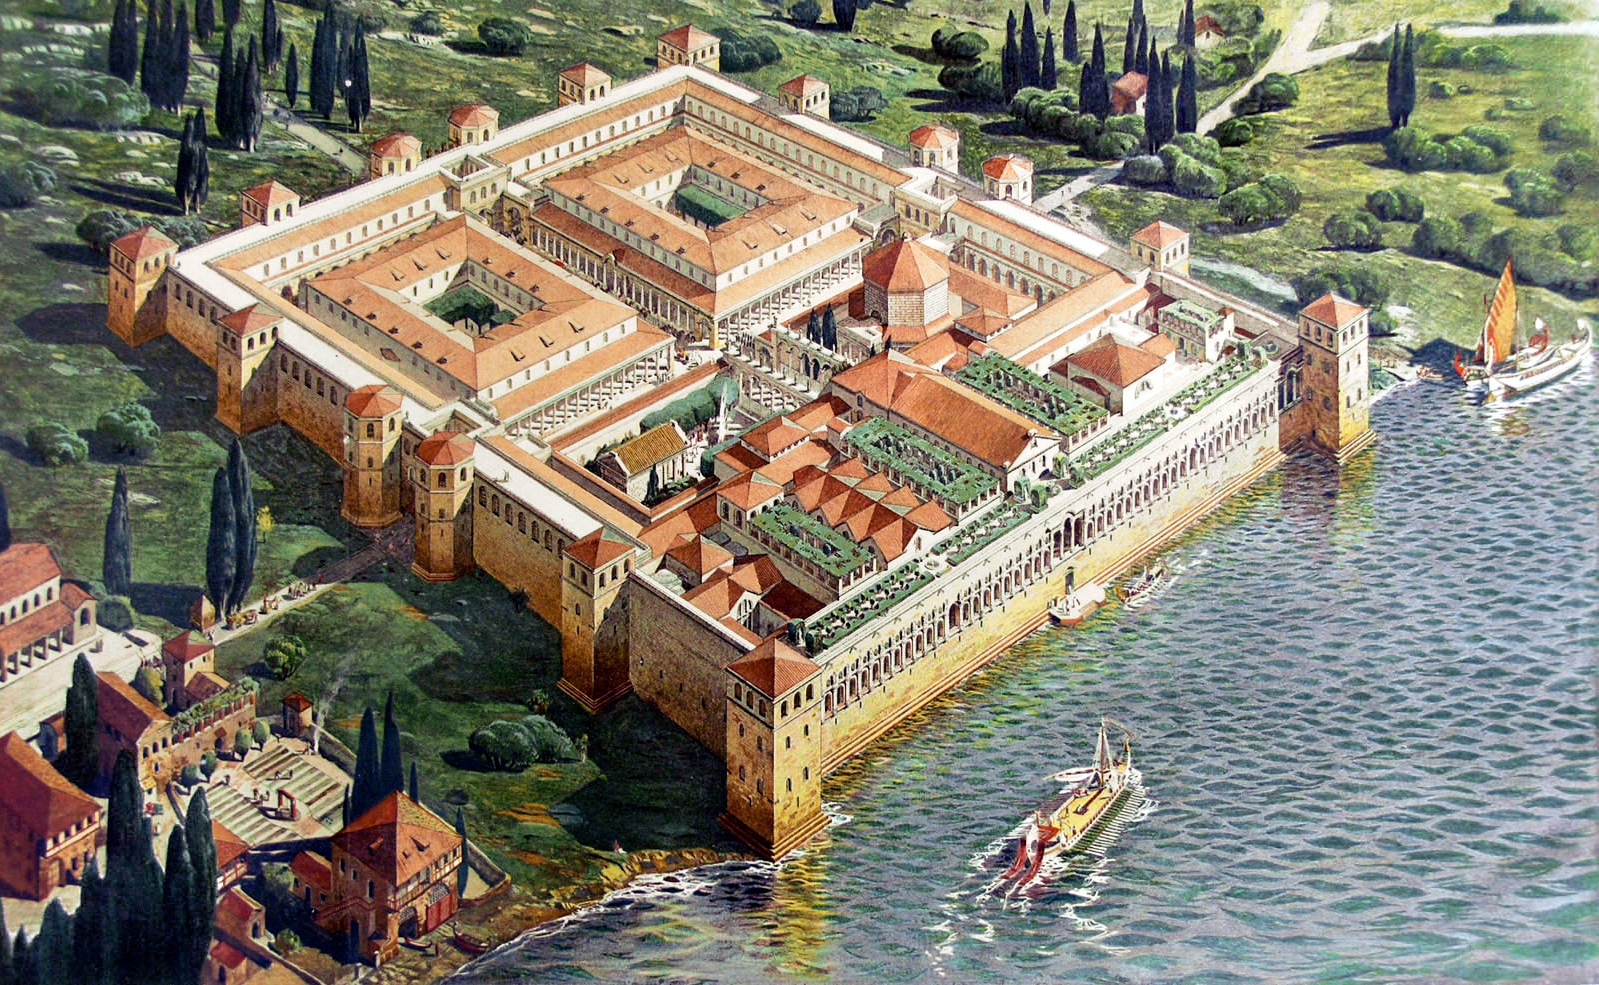 Hébrard, Ernest. Illustration depicting the Palace of the Roman Emperor Diocletian in its original appearance, 1912. Image via Wikimedia under Public Domain.